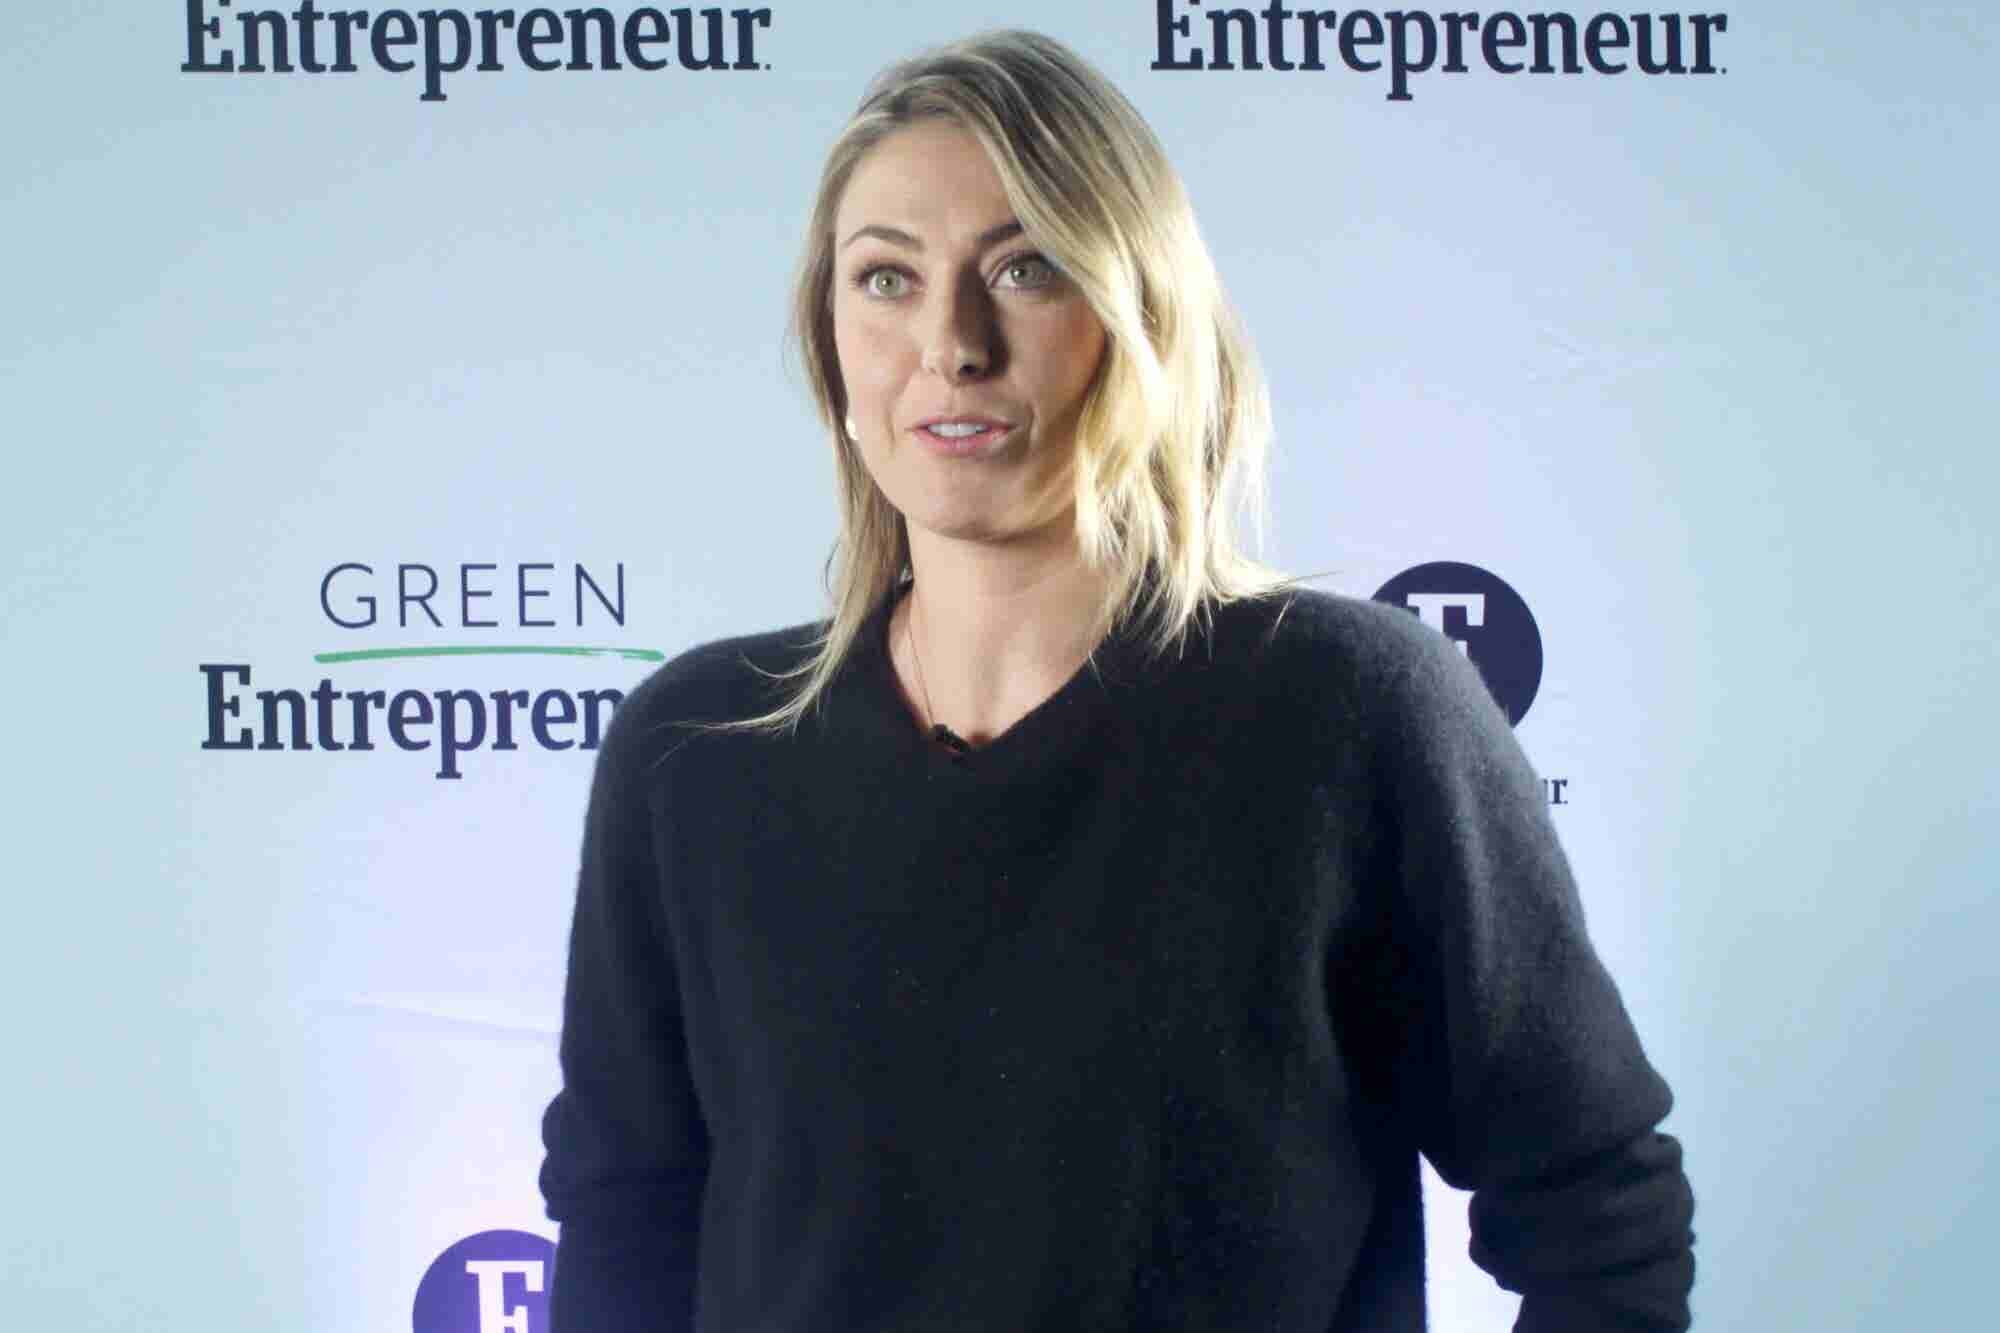 Here's What Drives Maria Sharapova as an Athlete and Entrepreneur